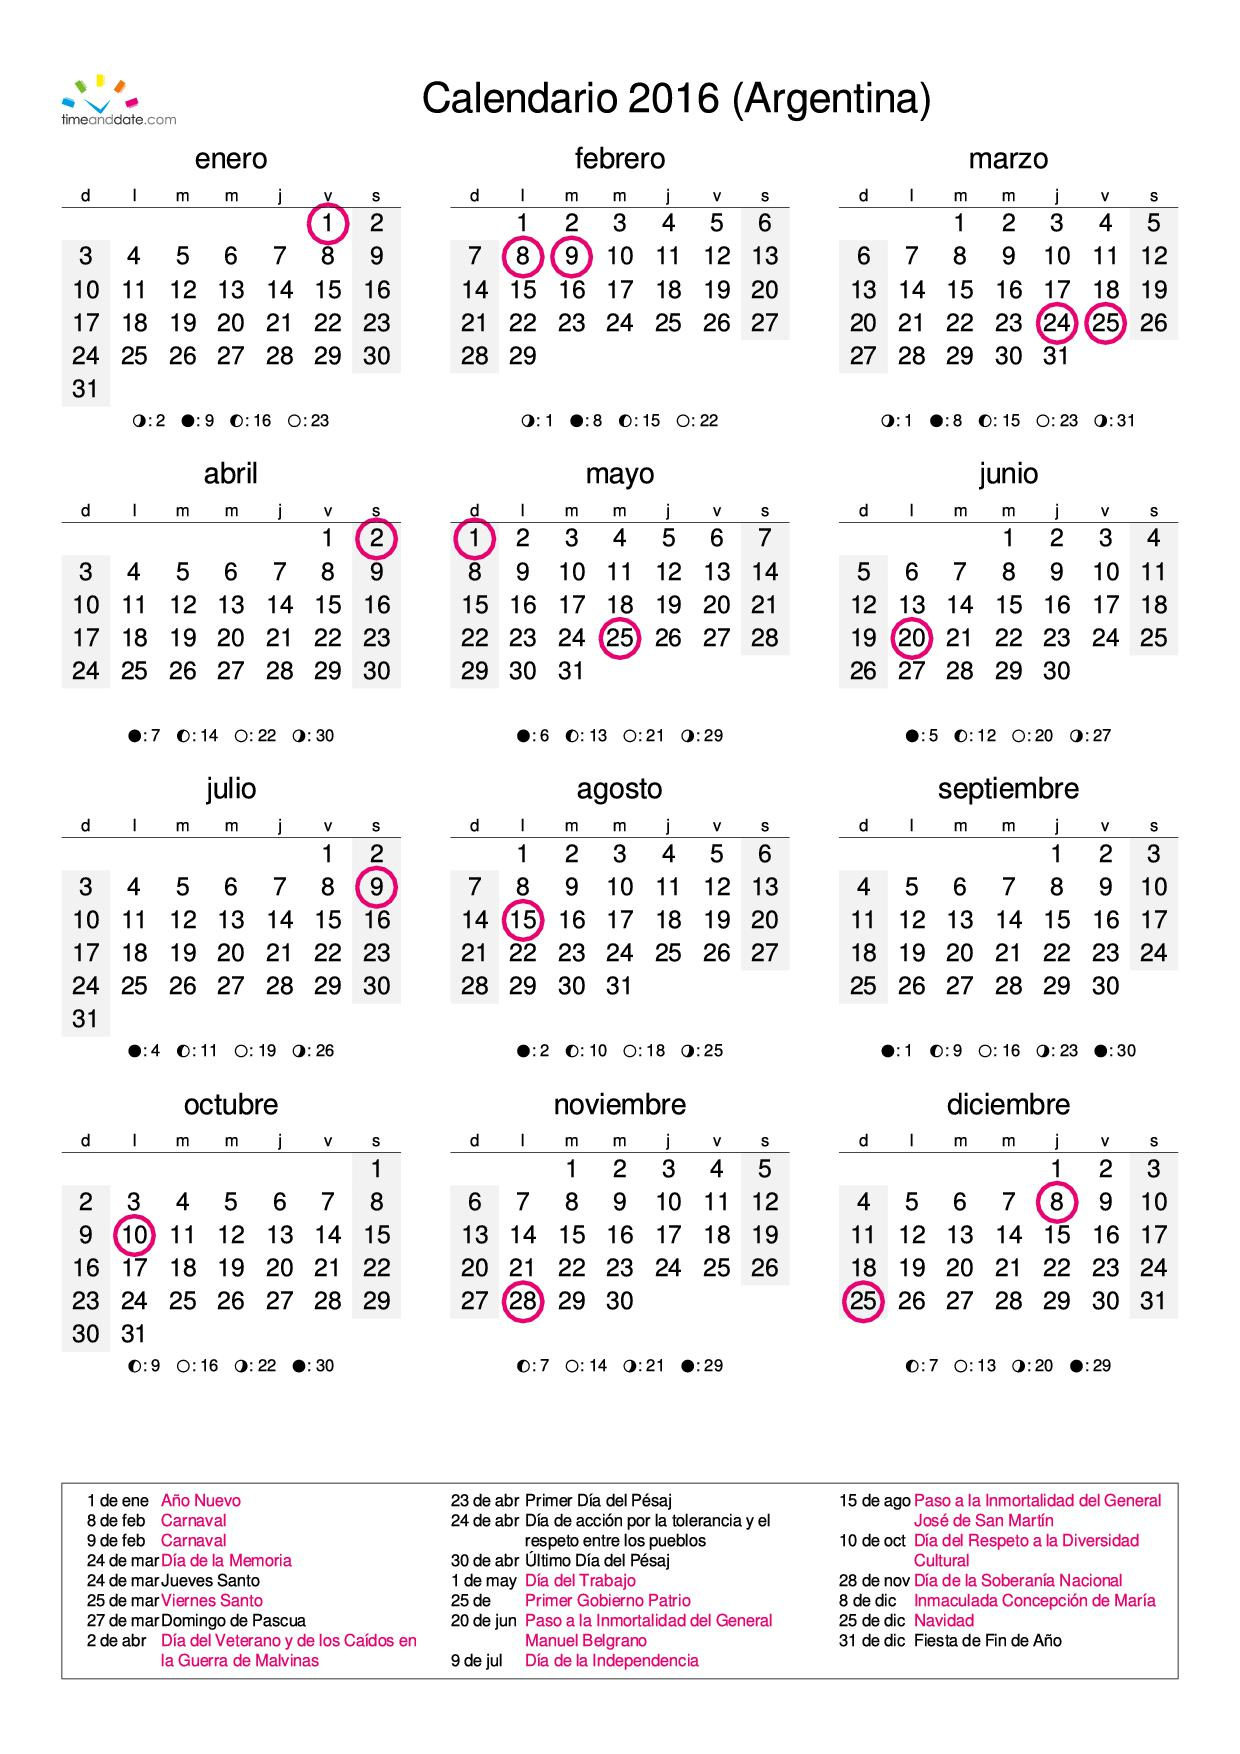 Calendario Mes Febrero Calendario 2016 Febrero Progresar New Style For 2016 2017